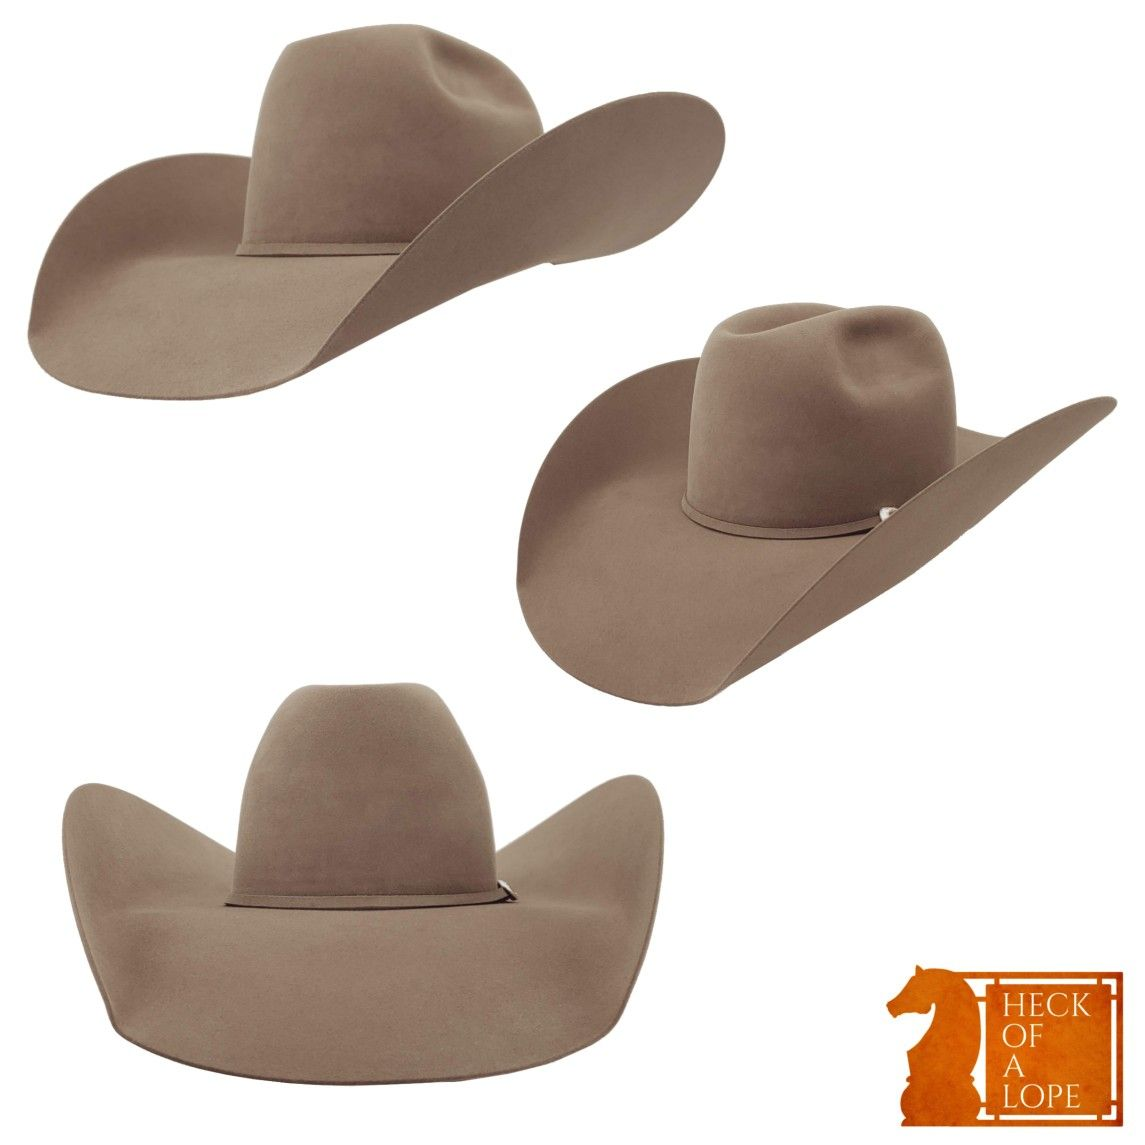 362d5467 💥All New💥 Atwood Hat Company Pecan Felt Hat! This Super Hot ...